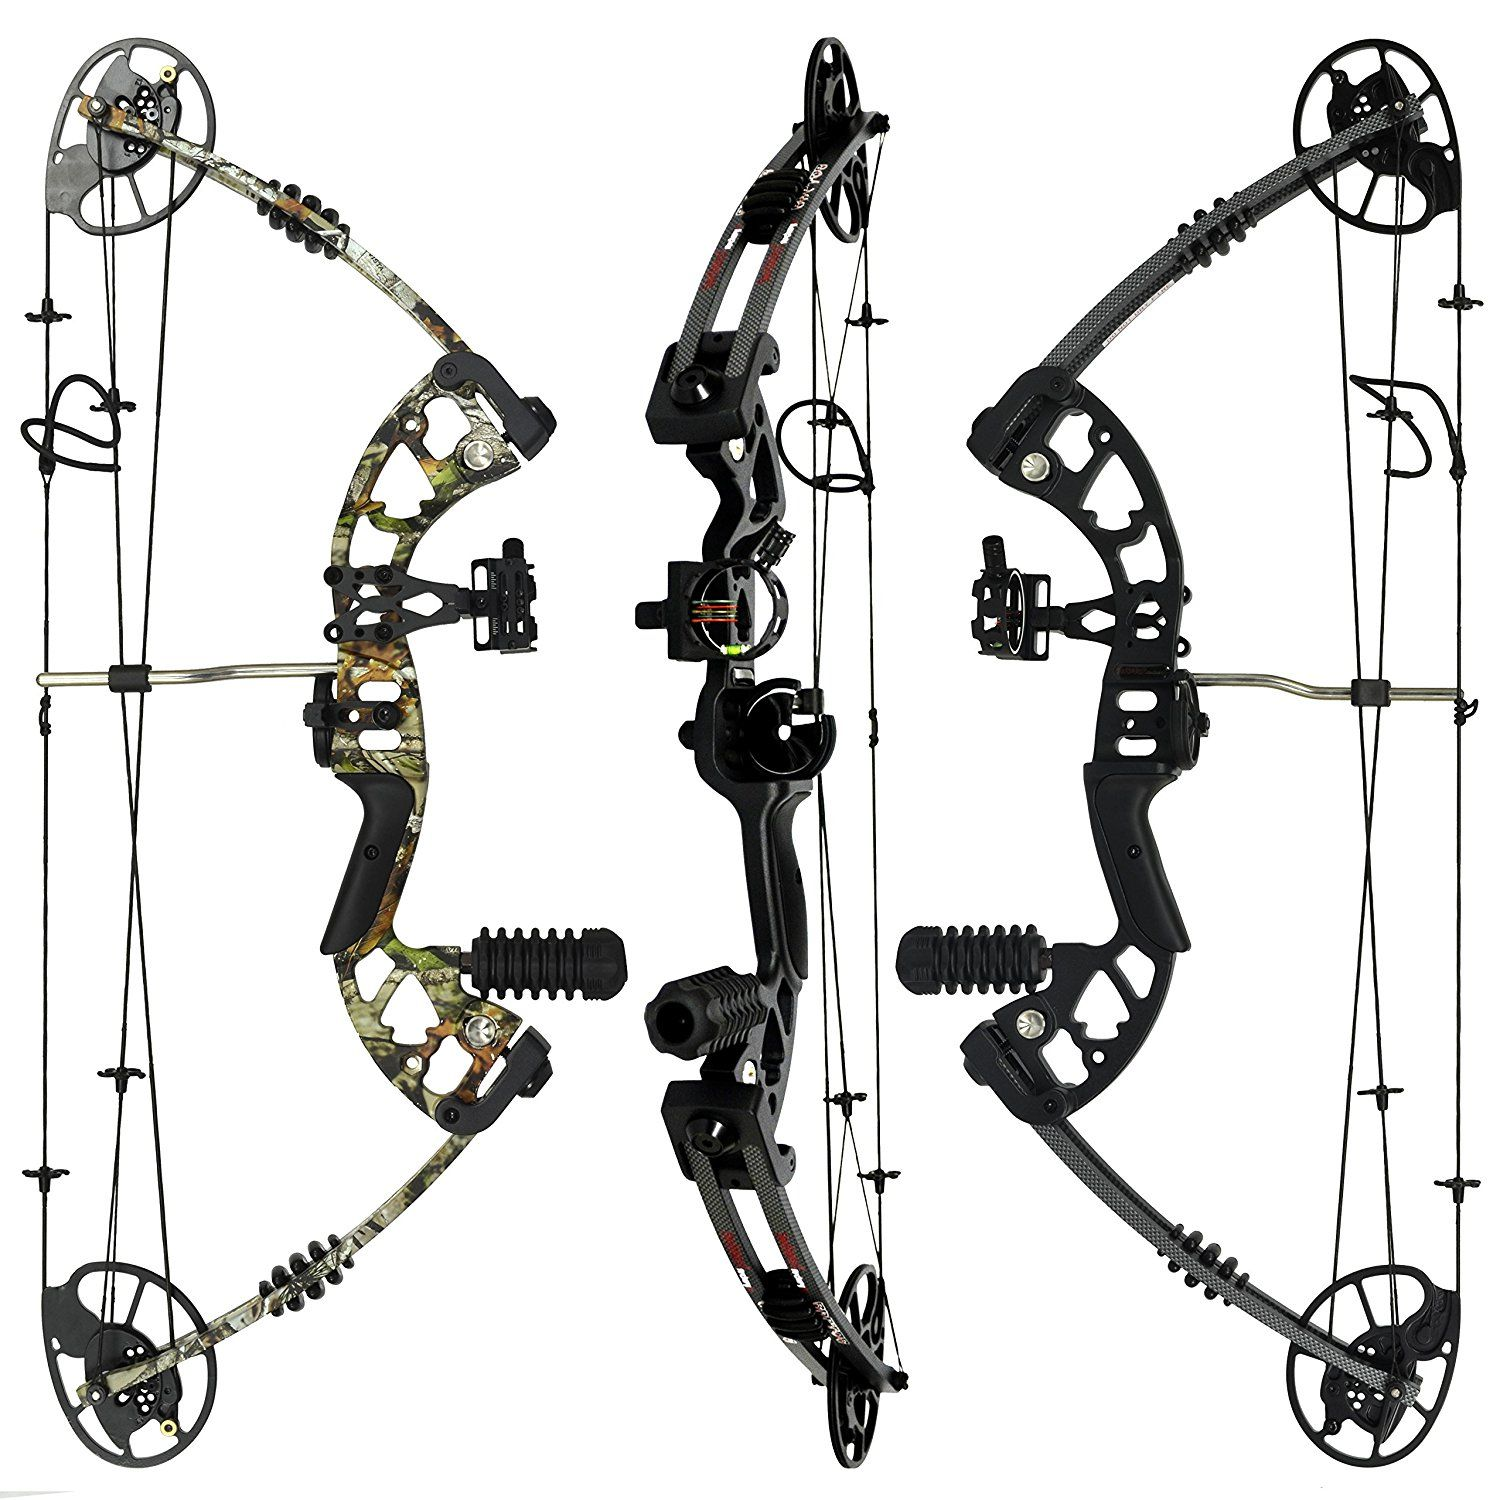 RAPTOR Compound Bow and Arrow Kit: Fully adjustable 24.5-31\